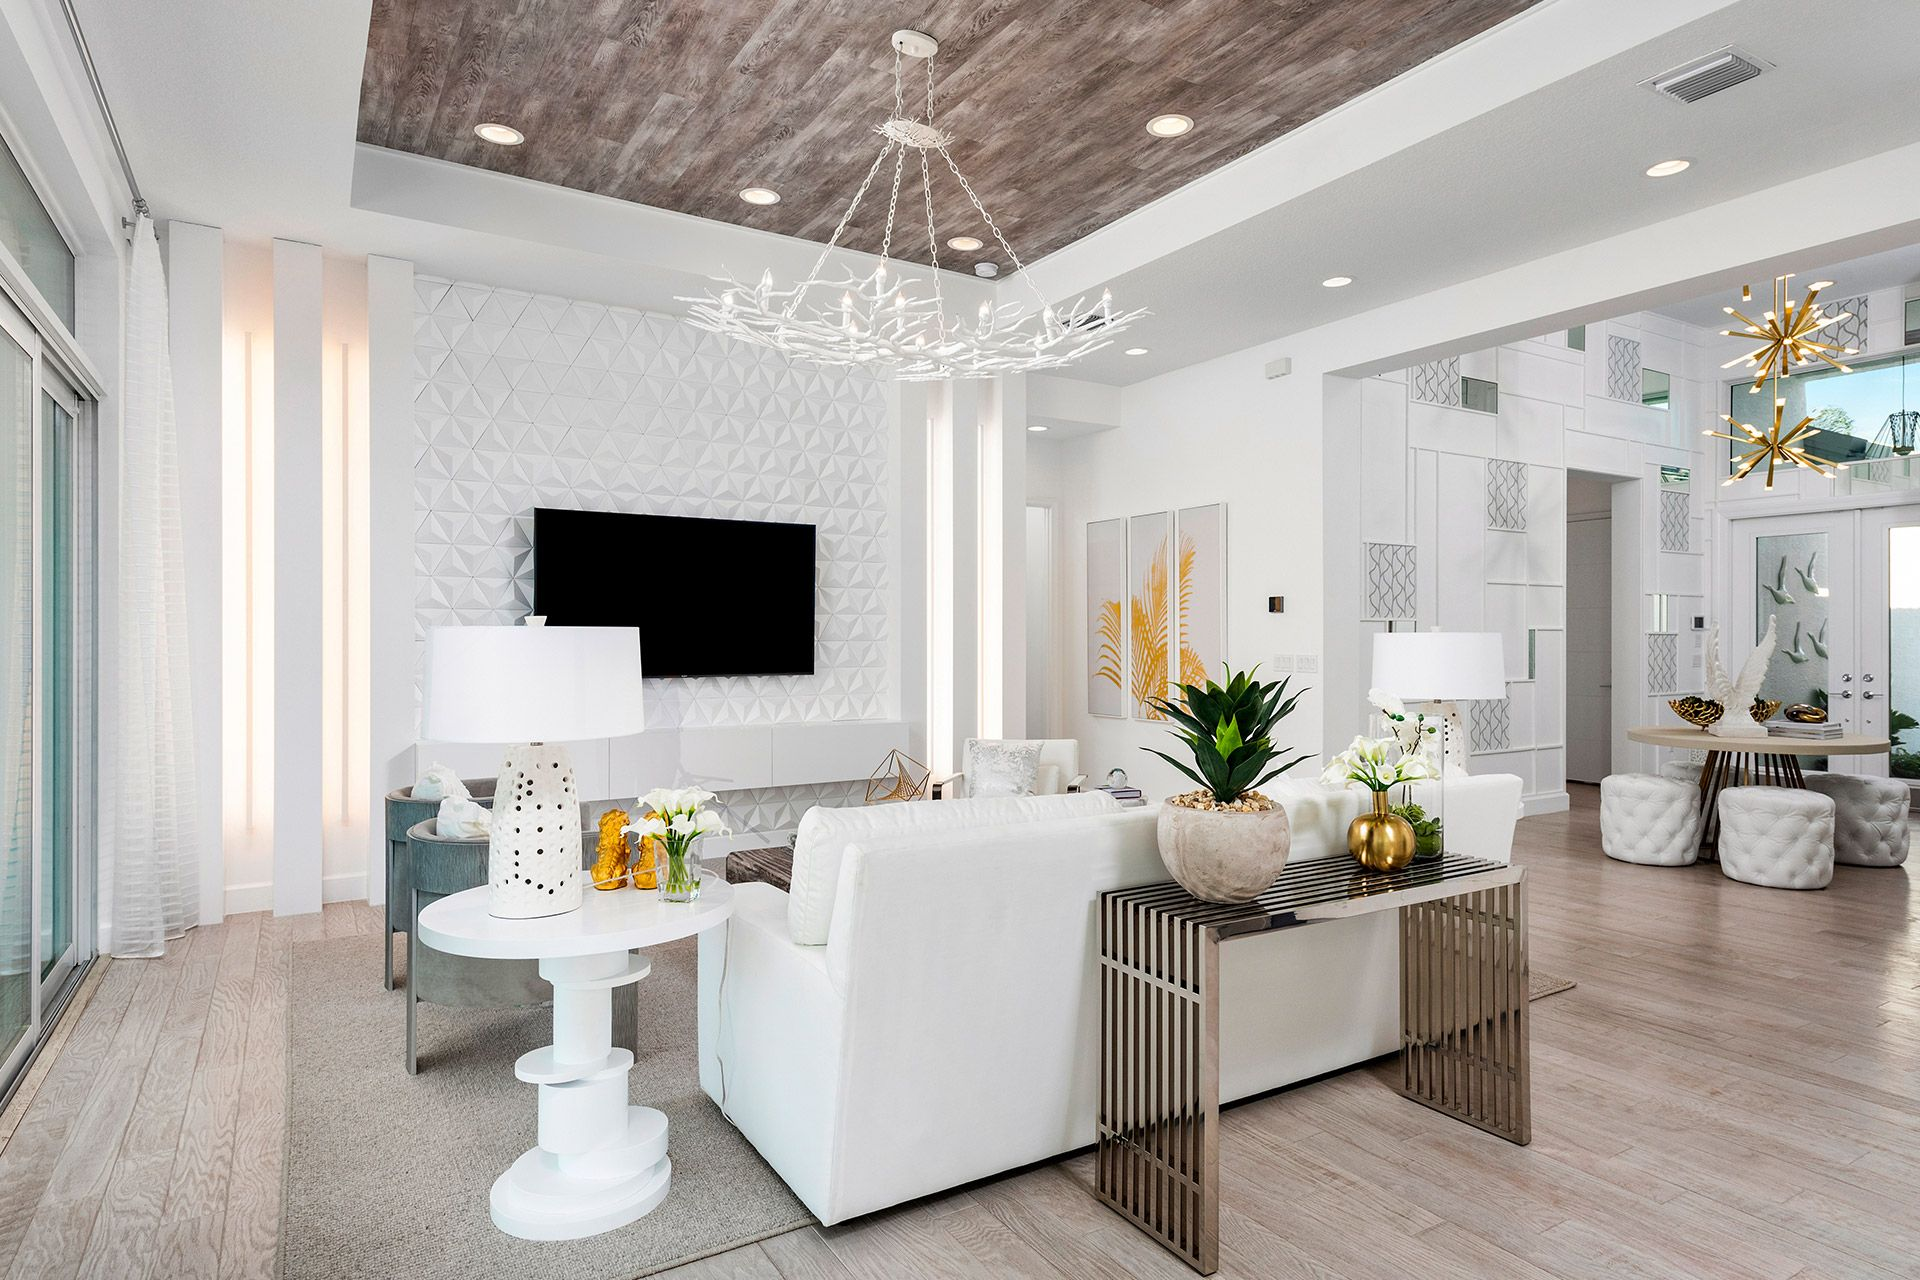 Living Area featured in the Oceana By GL Homes in Naples, FL